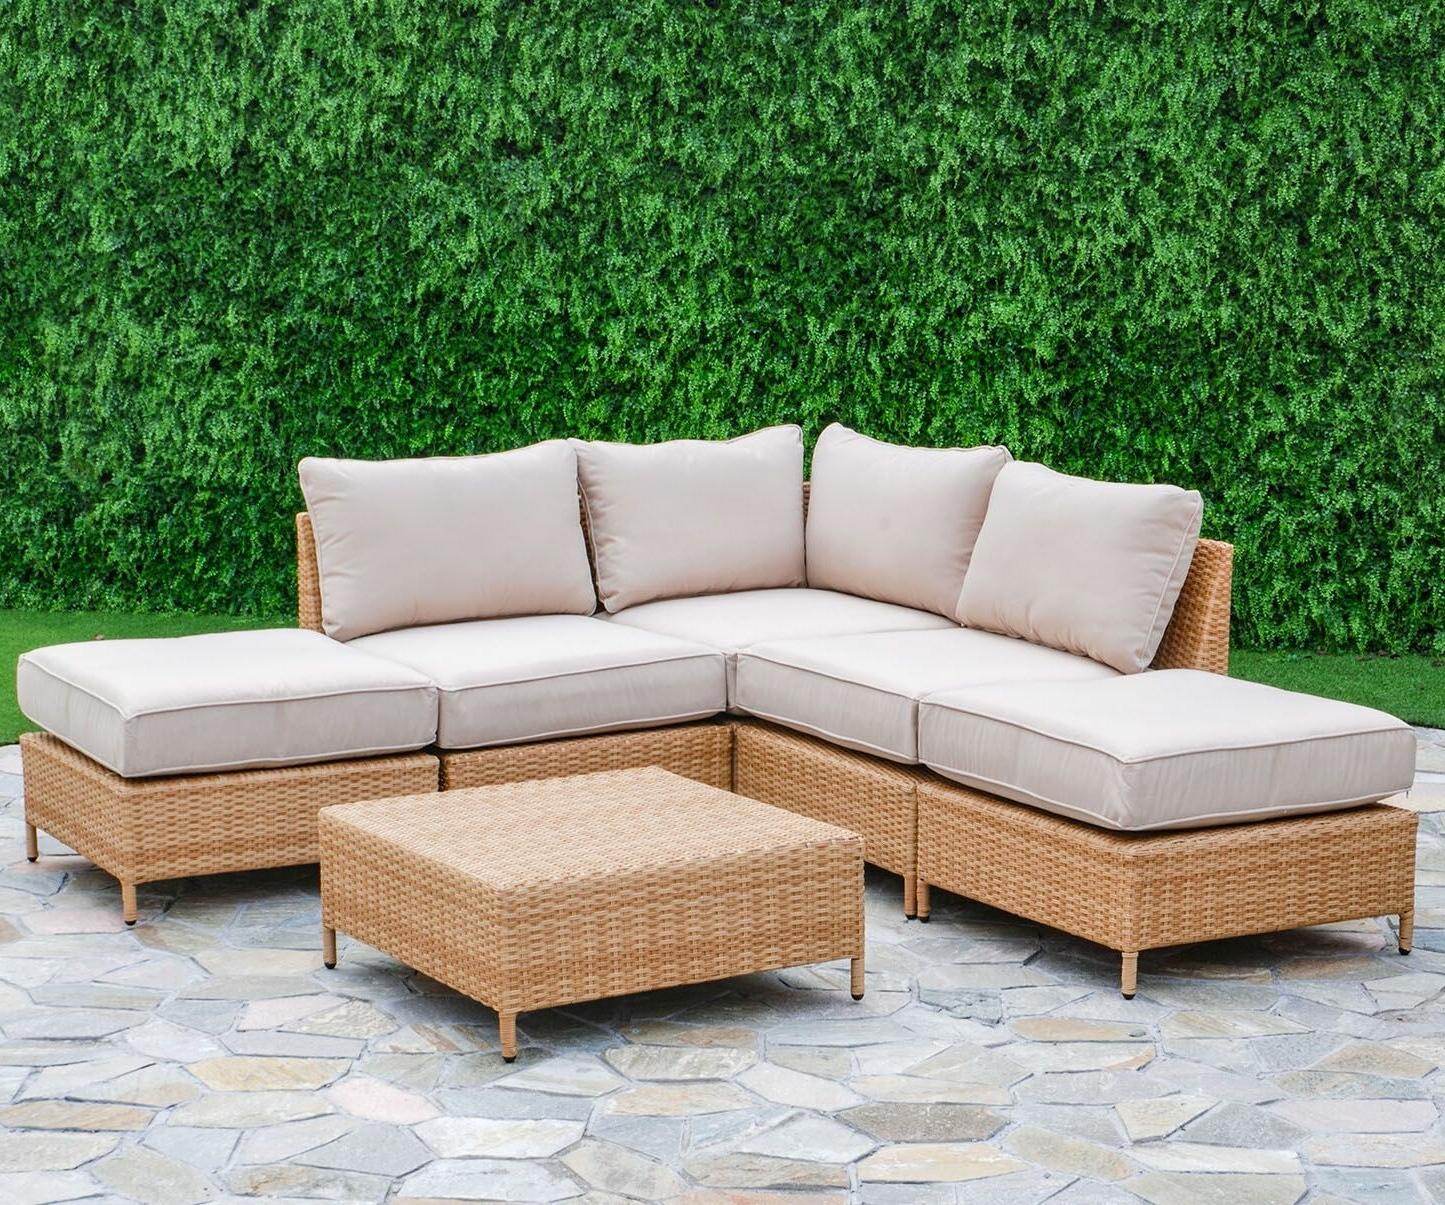 Best And Newest Olinda 3 Piece Sectionals Seating Group With Cushions Regarding Breakwater Bay Tamworth 6 Piece Sectional Seating Group With Cushions (View 4 of 25)